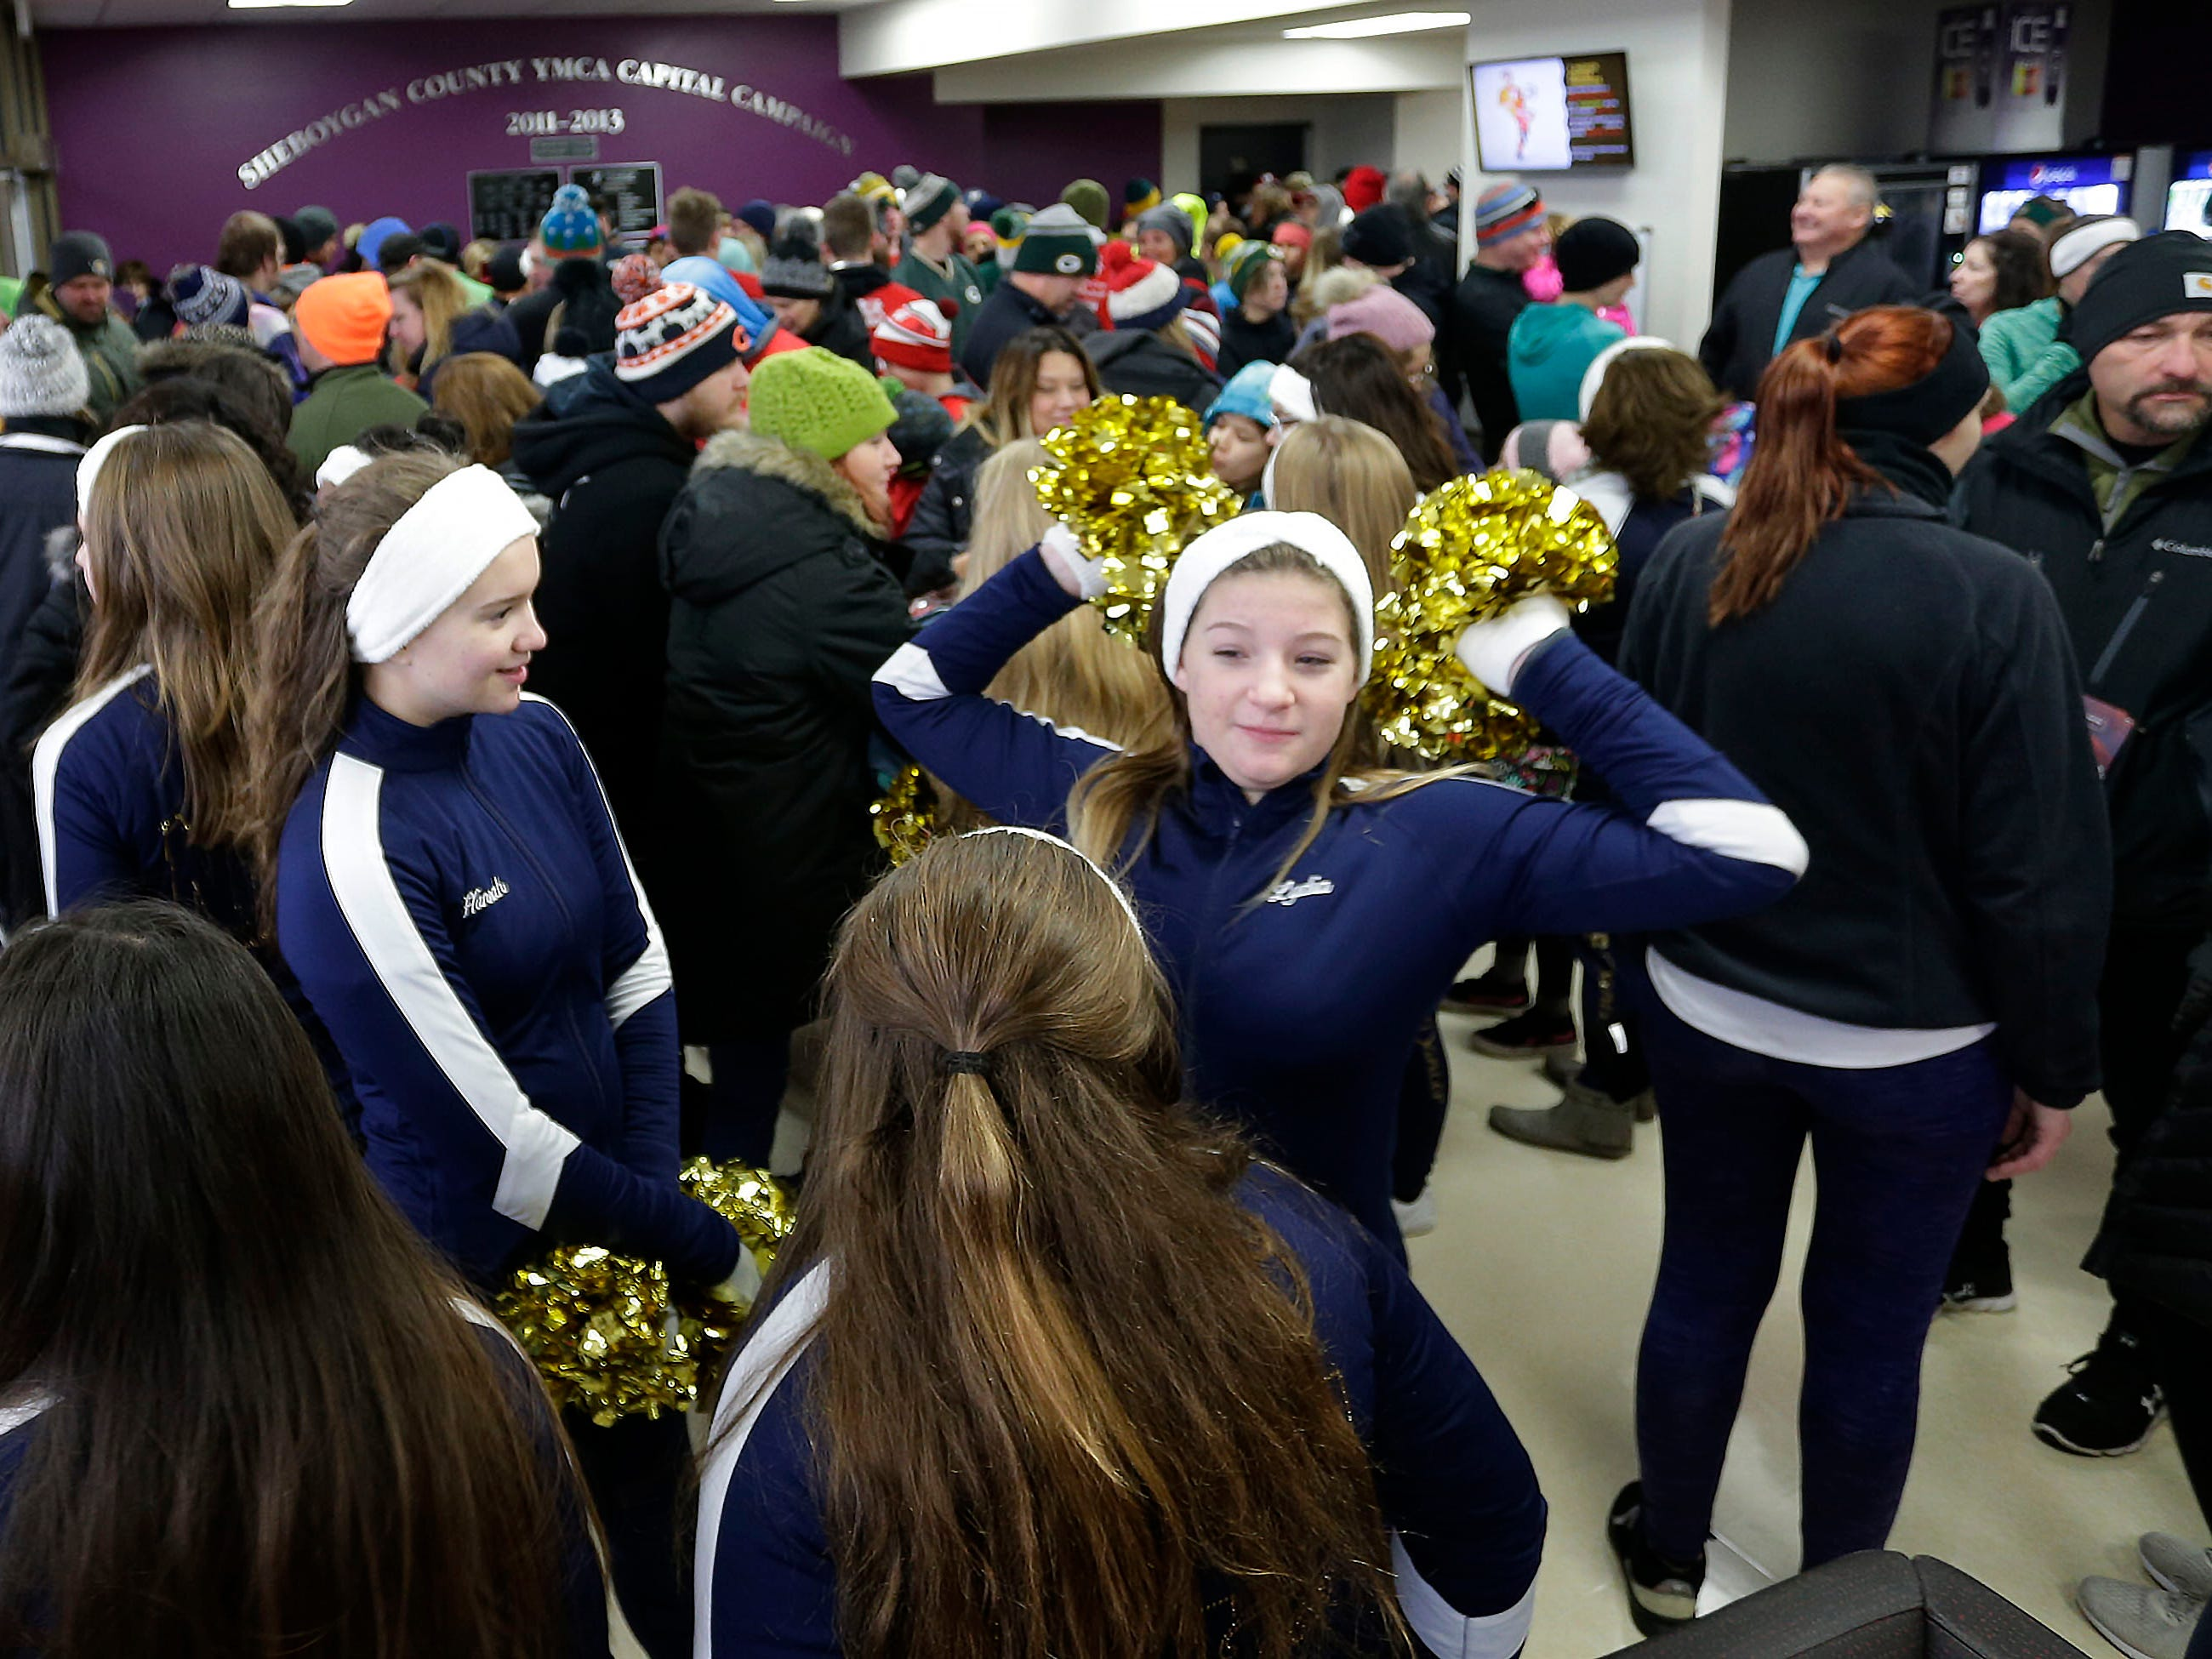 Sheboygan North Dance Team members stretch in the warm of the YMCA building before the Doug Opel Run for the Kids, Thursday, November 22, 2018, in Sheboygan, Wis.